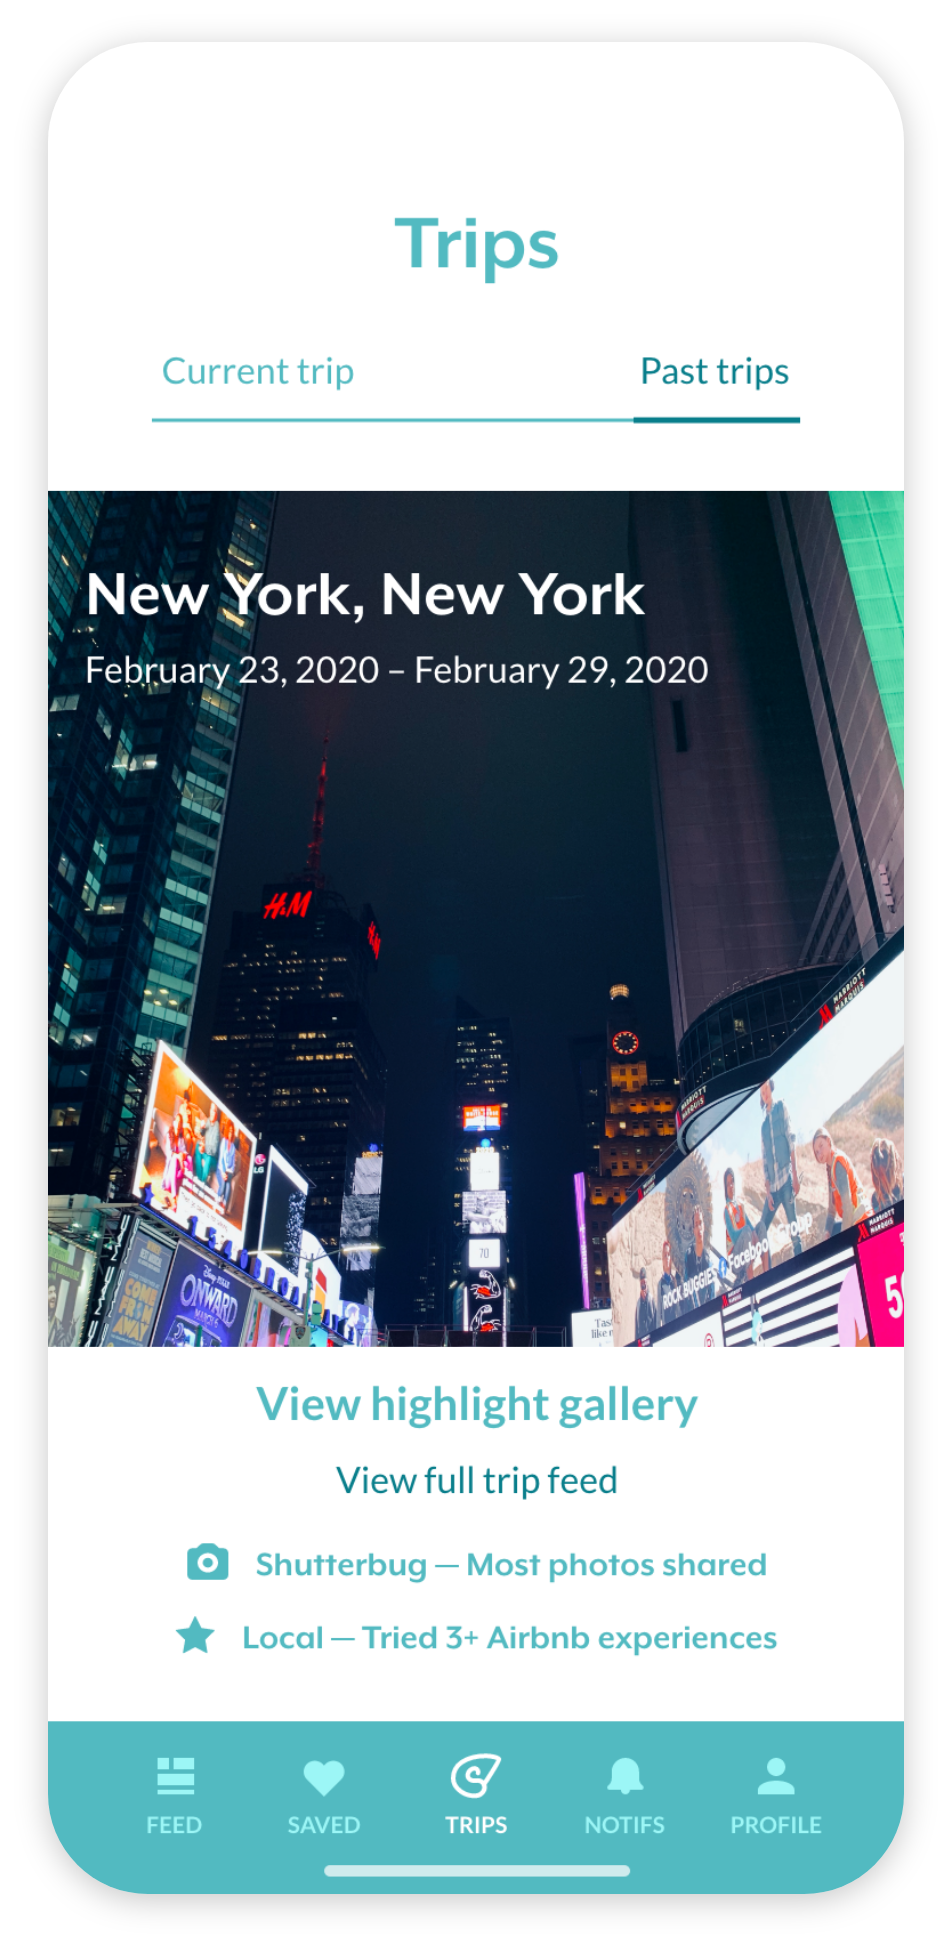 a screen showing a past trip to New York, showing buttons to view the live feed and the user's accolades